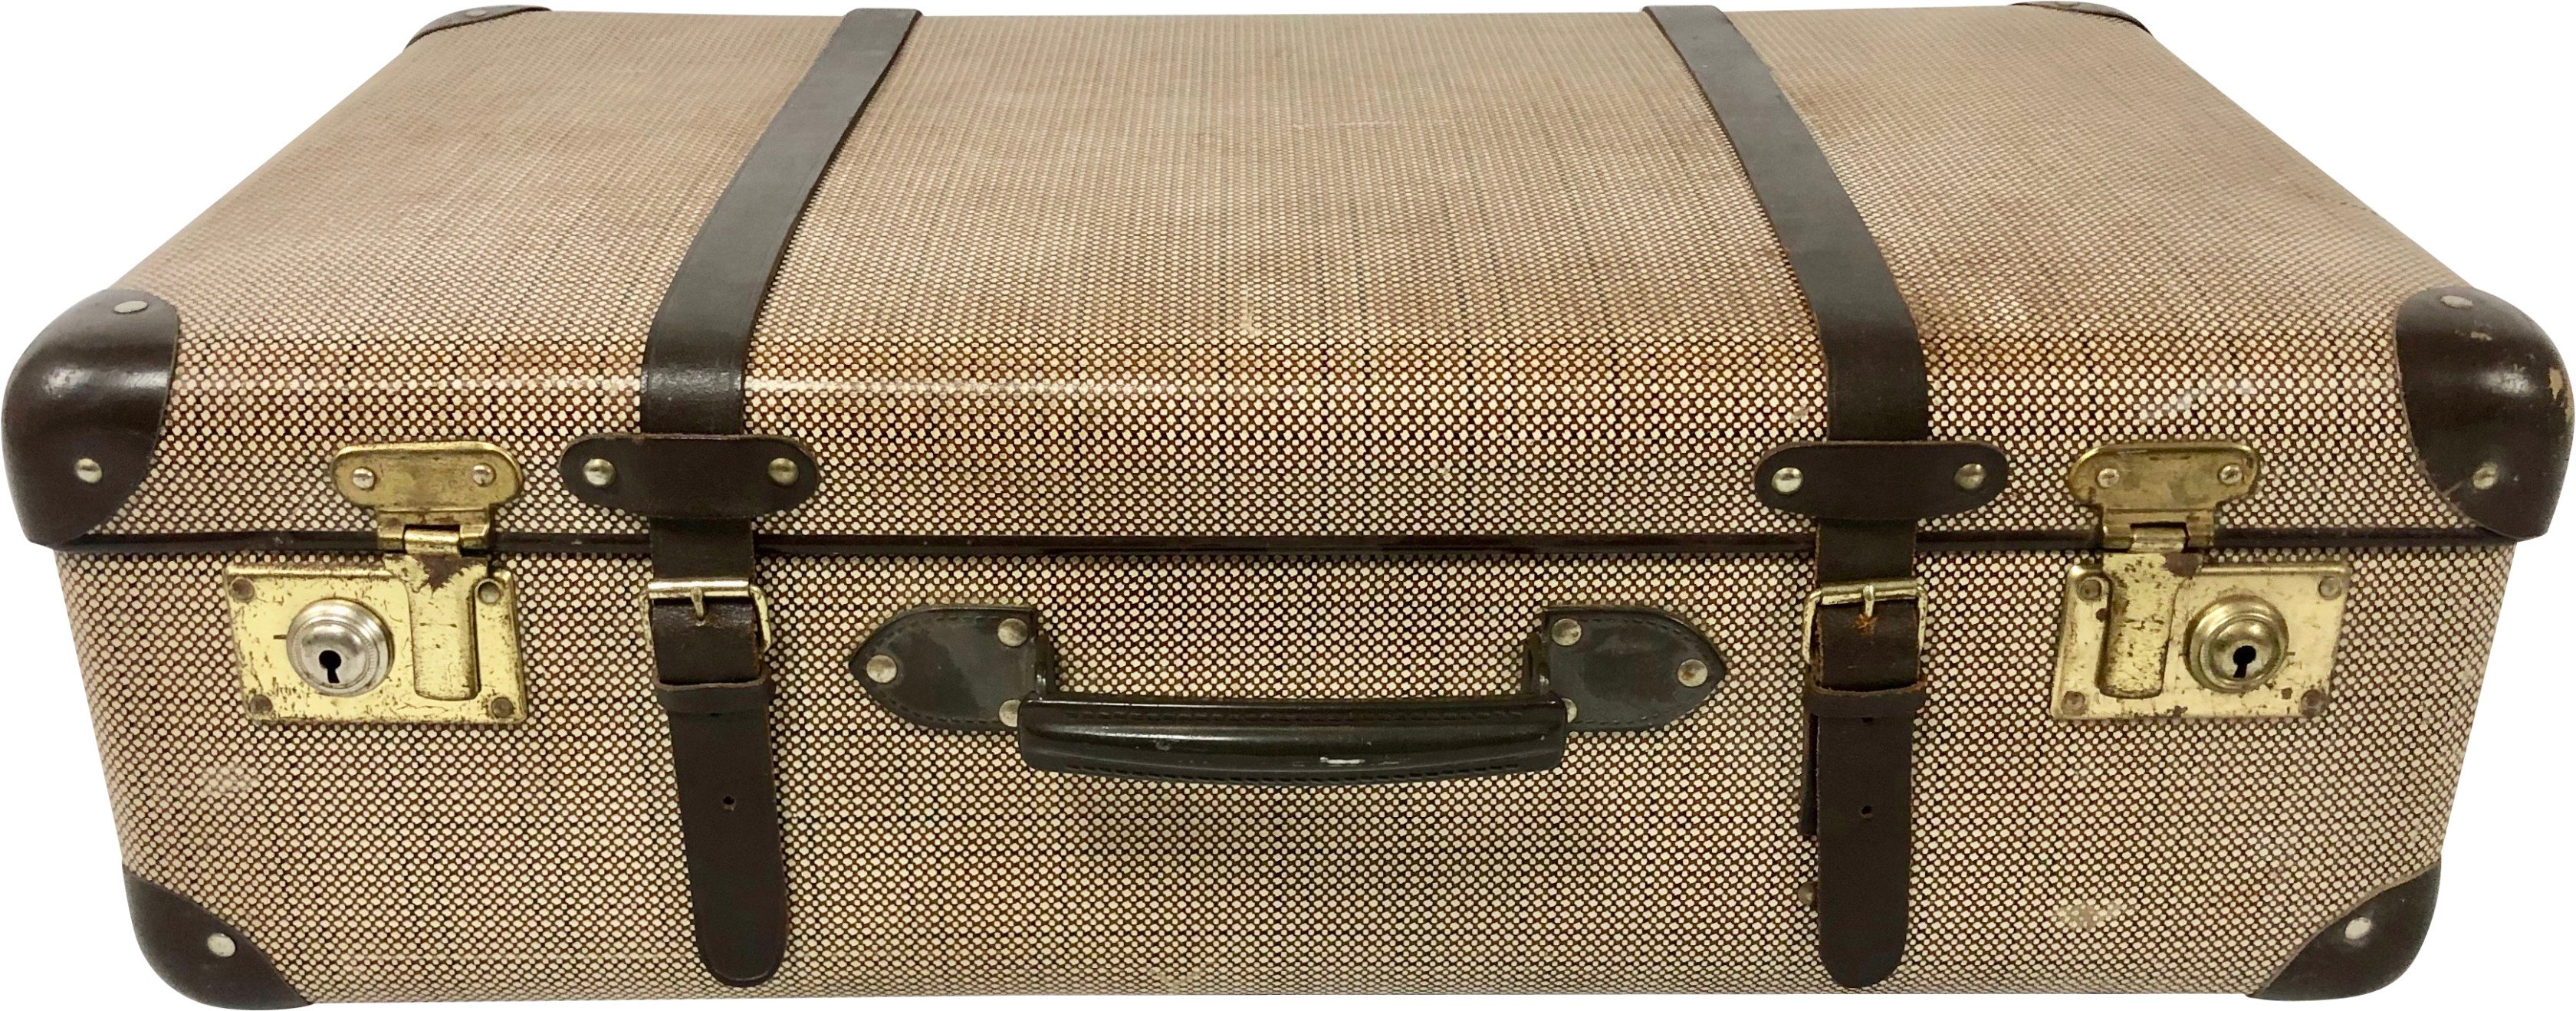 Suitcase, Germany, 1960s